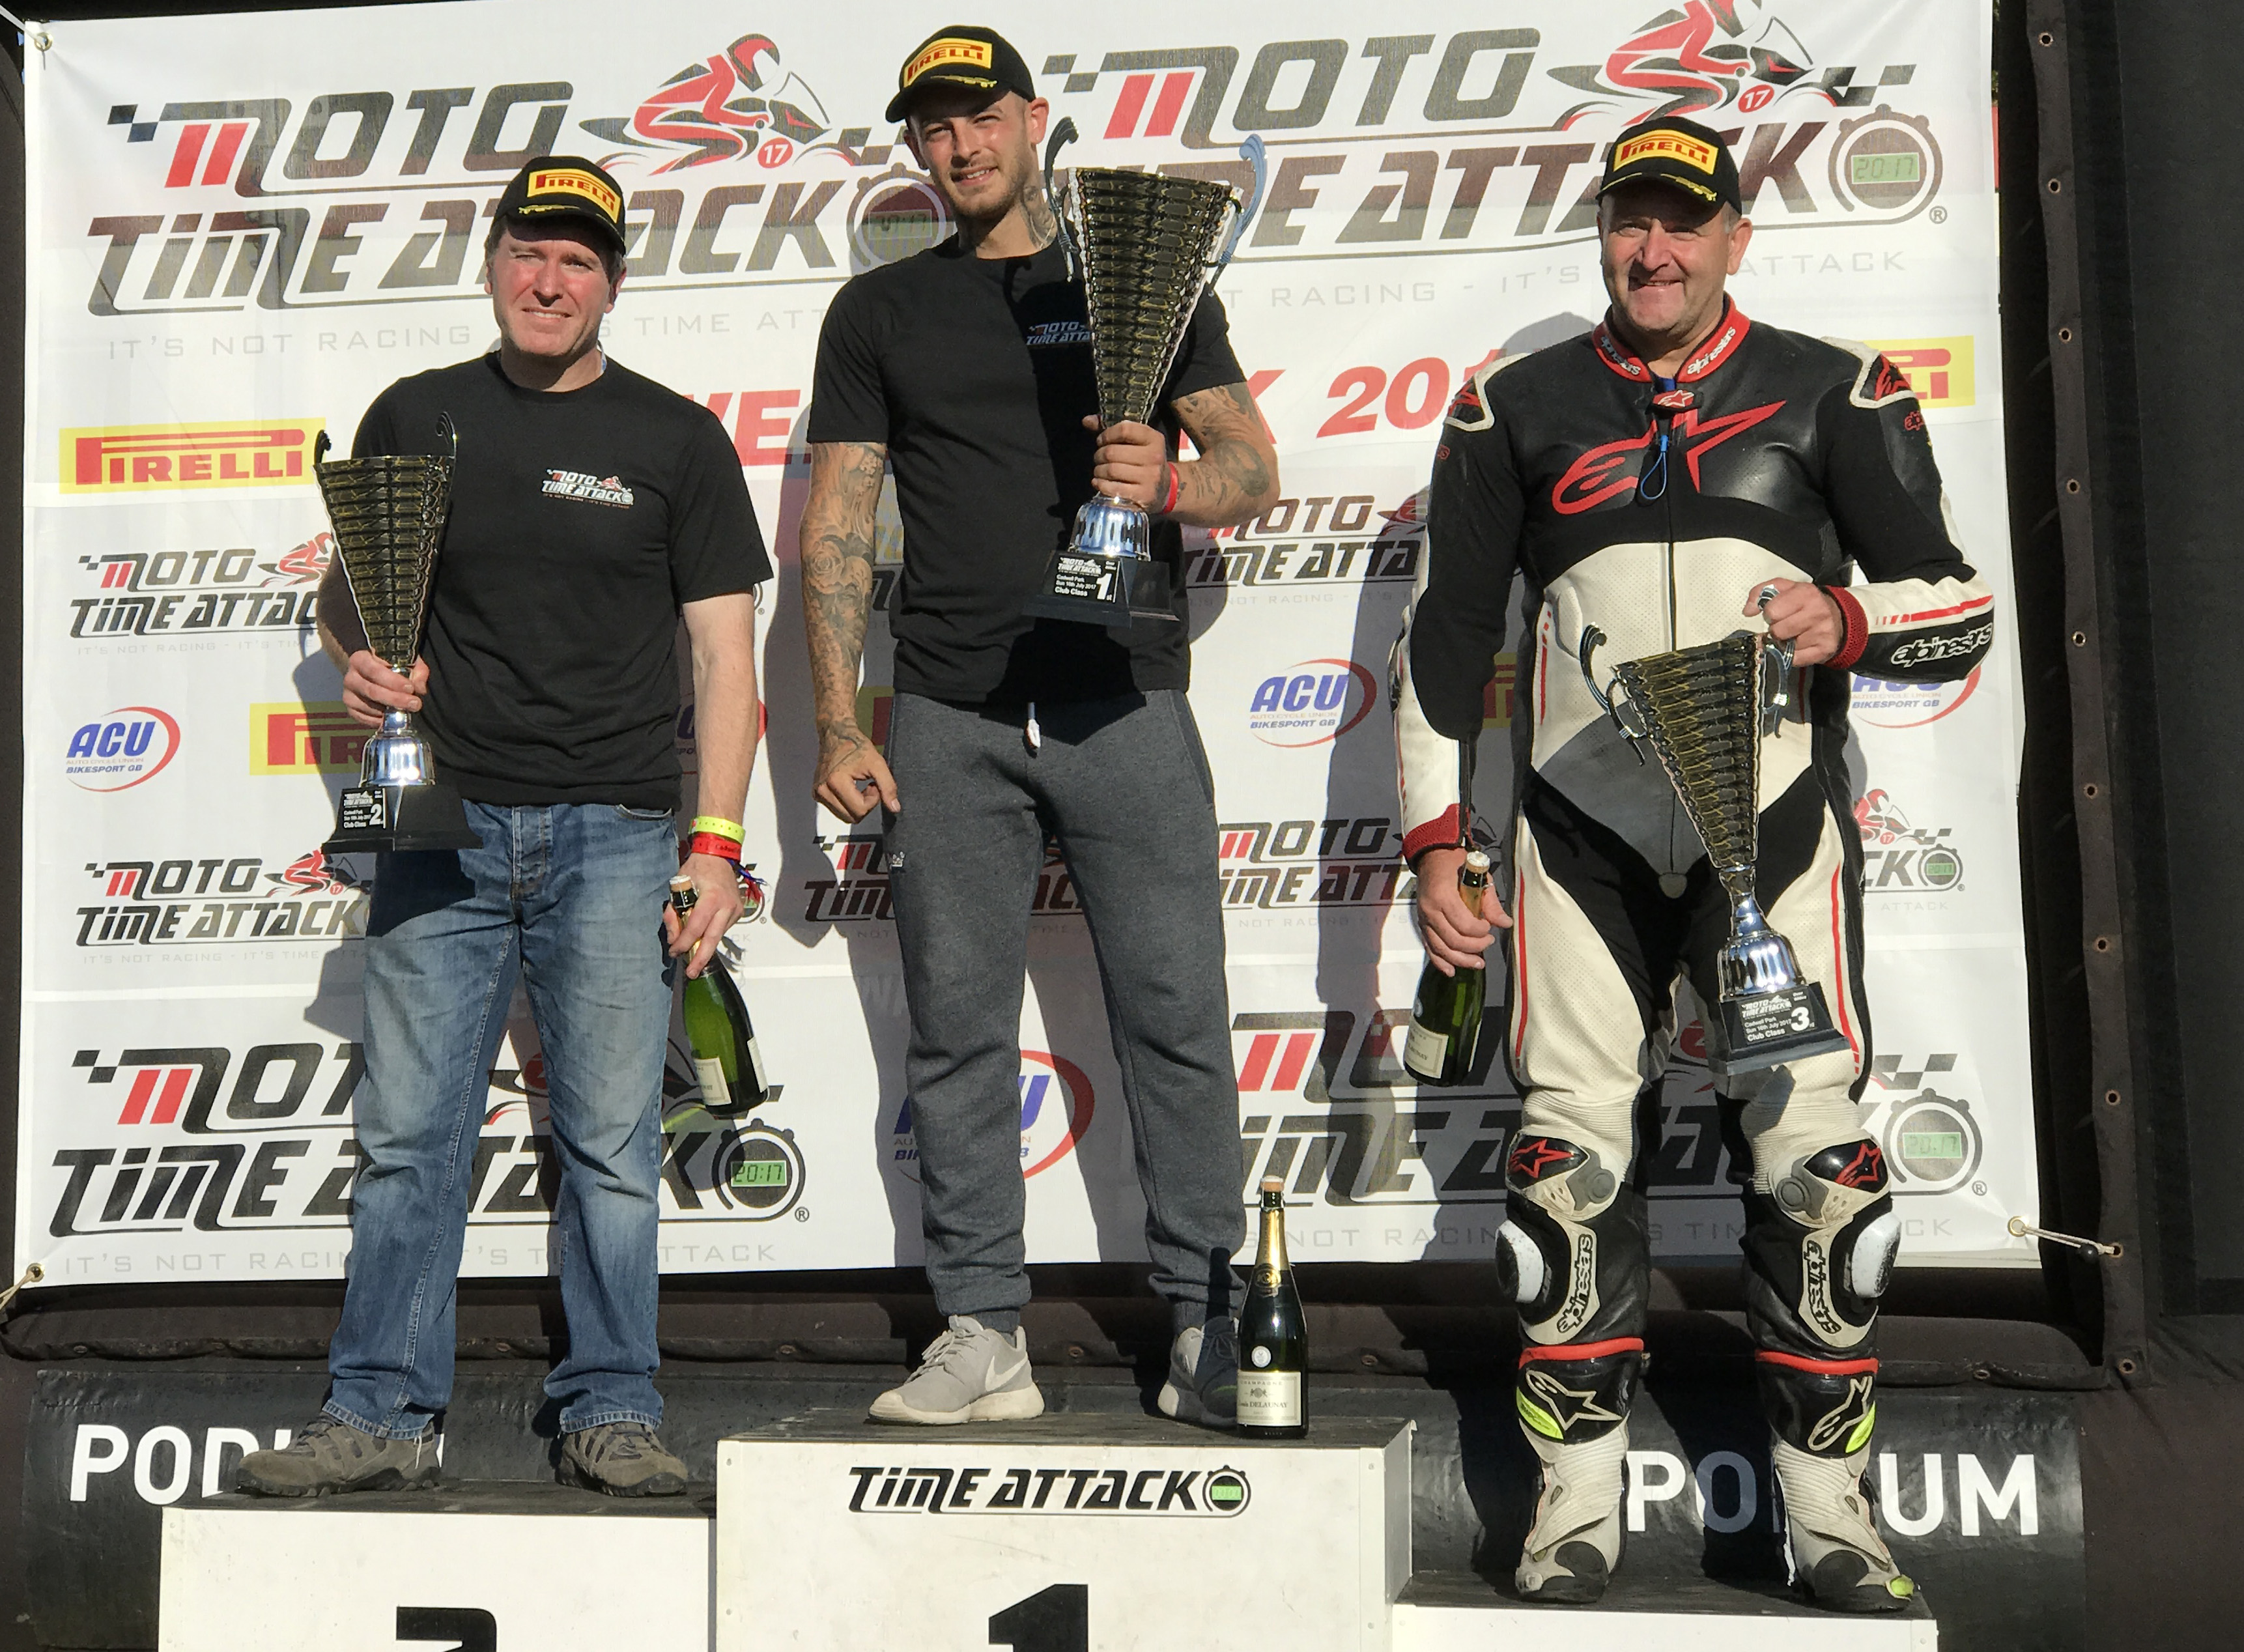 Moto Time Attack Club over 600 winners